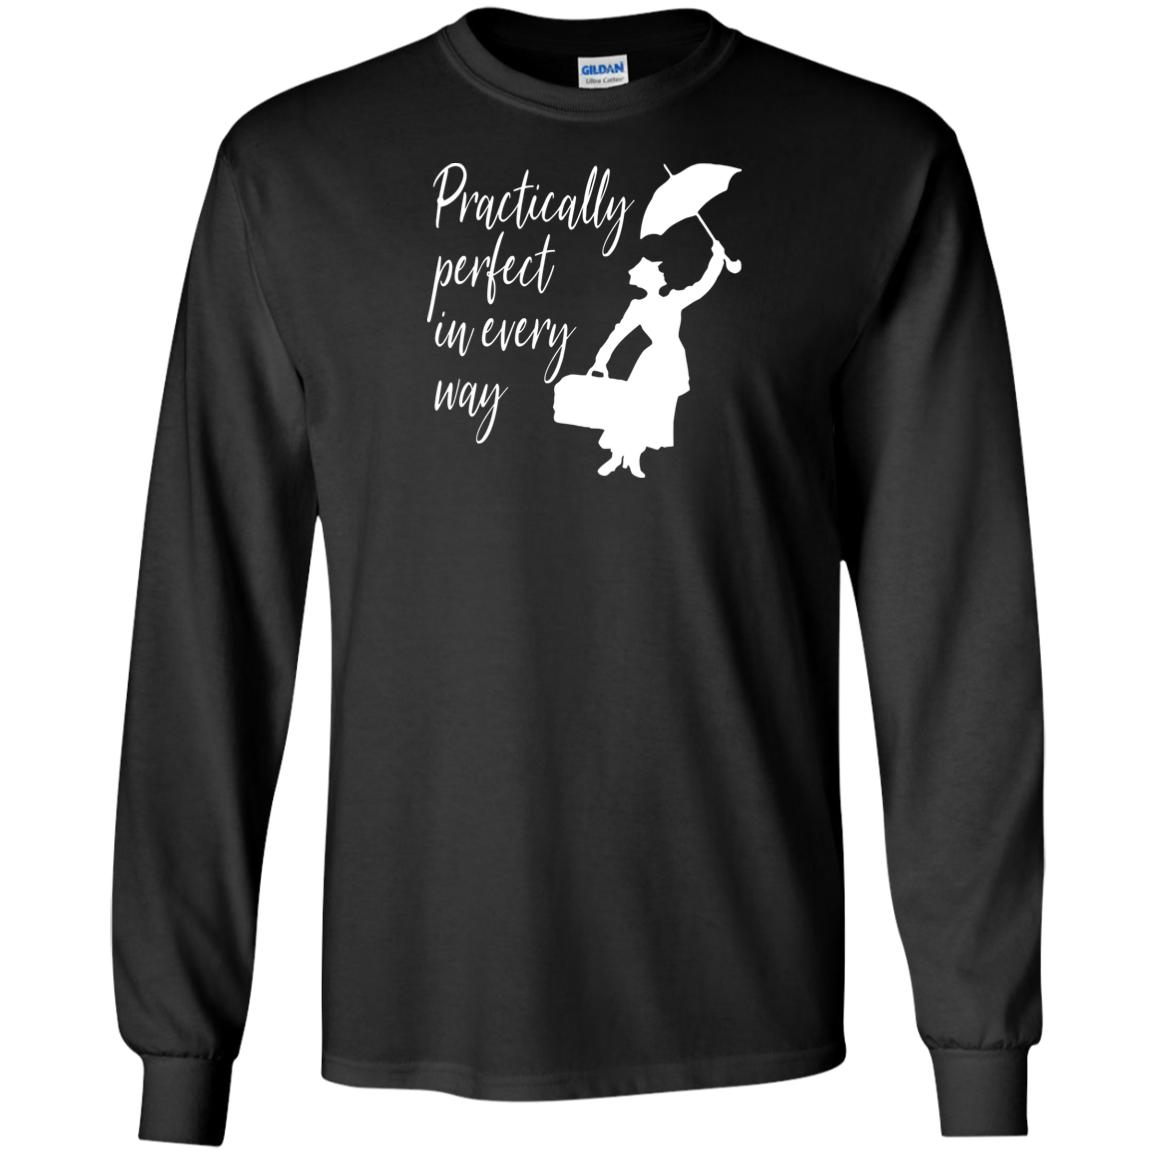 Mary Poppins Practically Perfect - Ultra Cotton T-Shirt